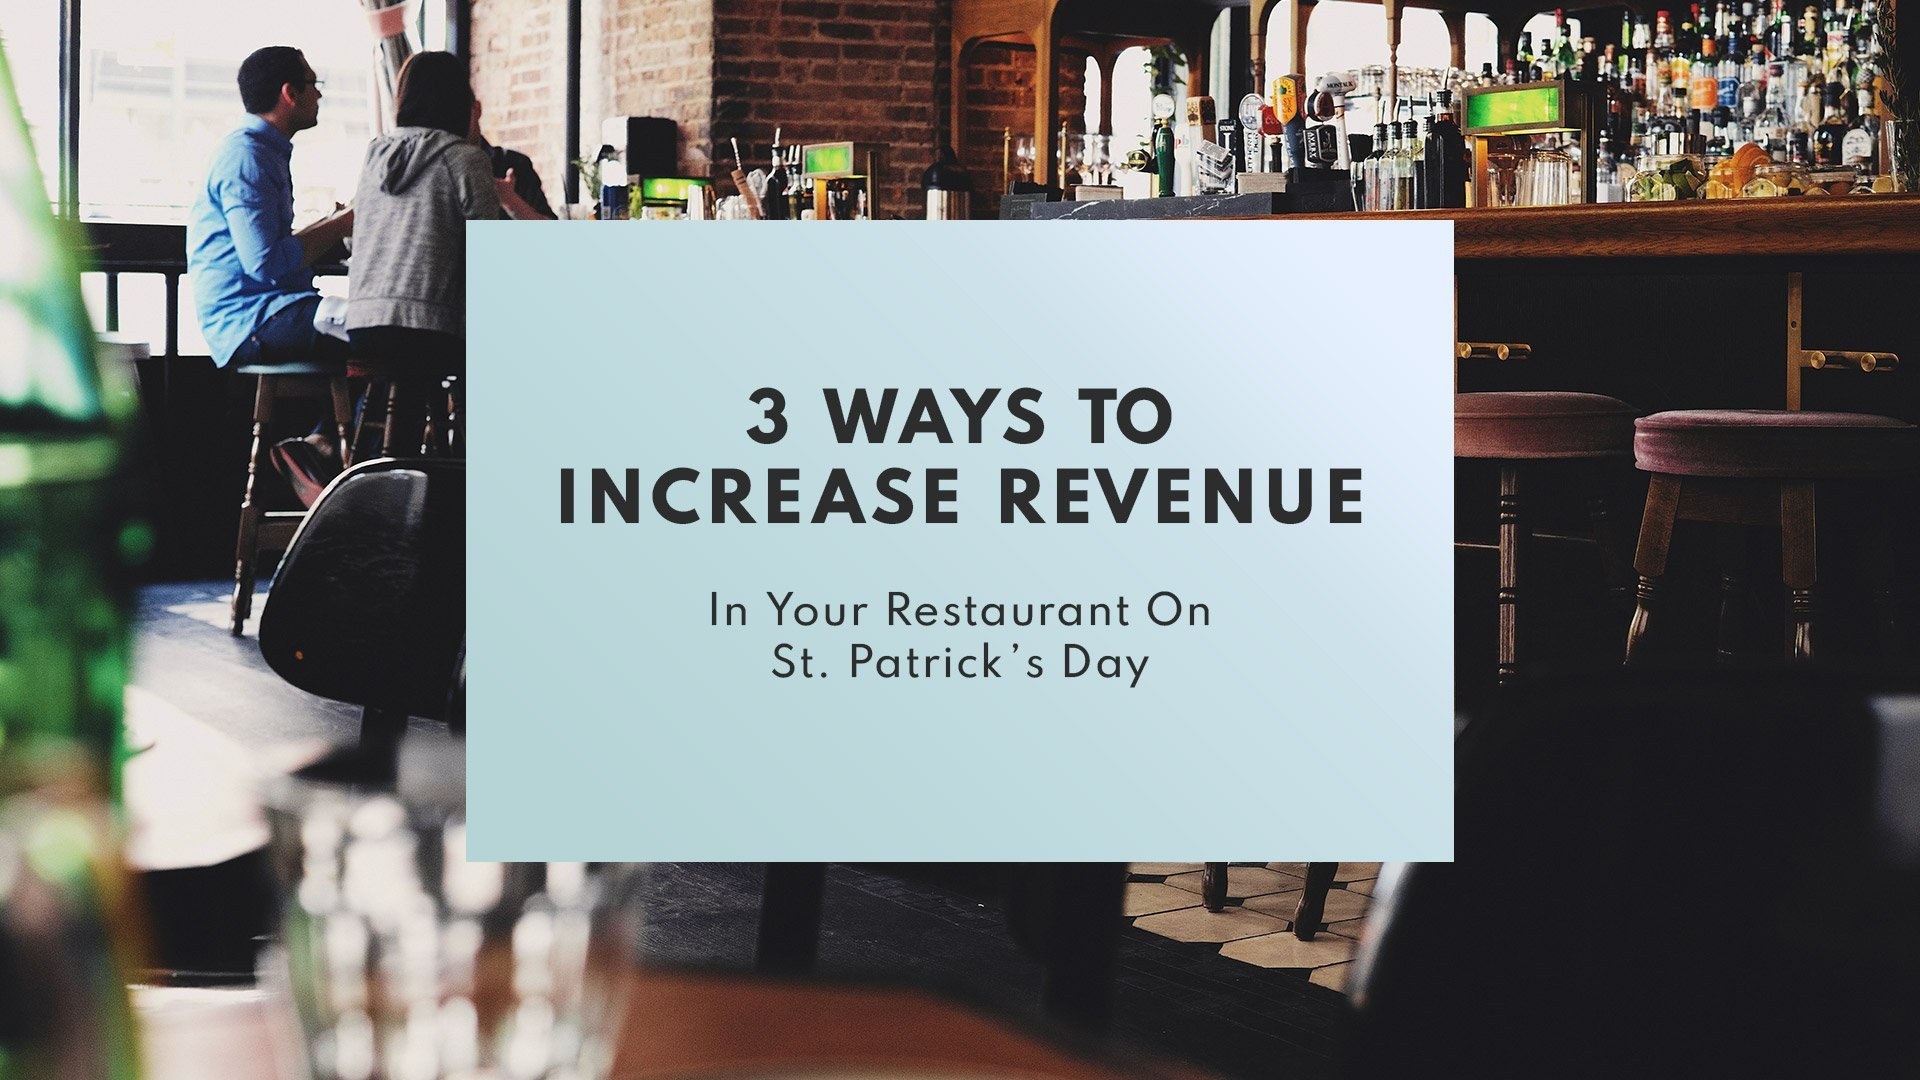 3 ways to increase revenue in your restaurant